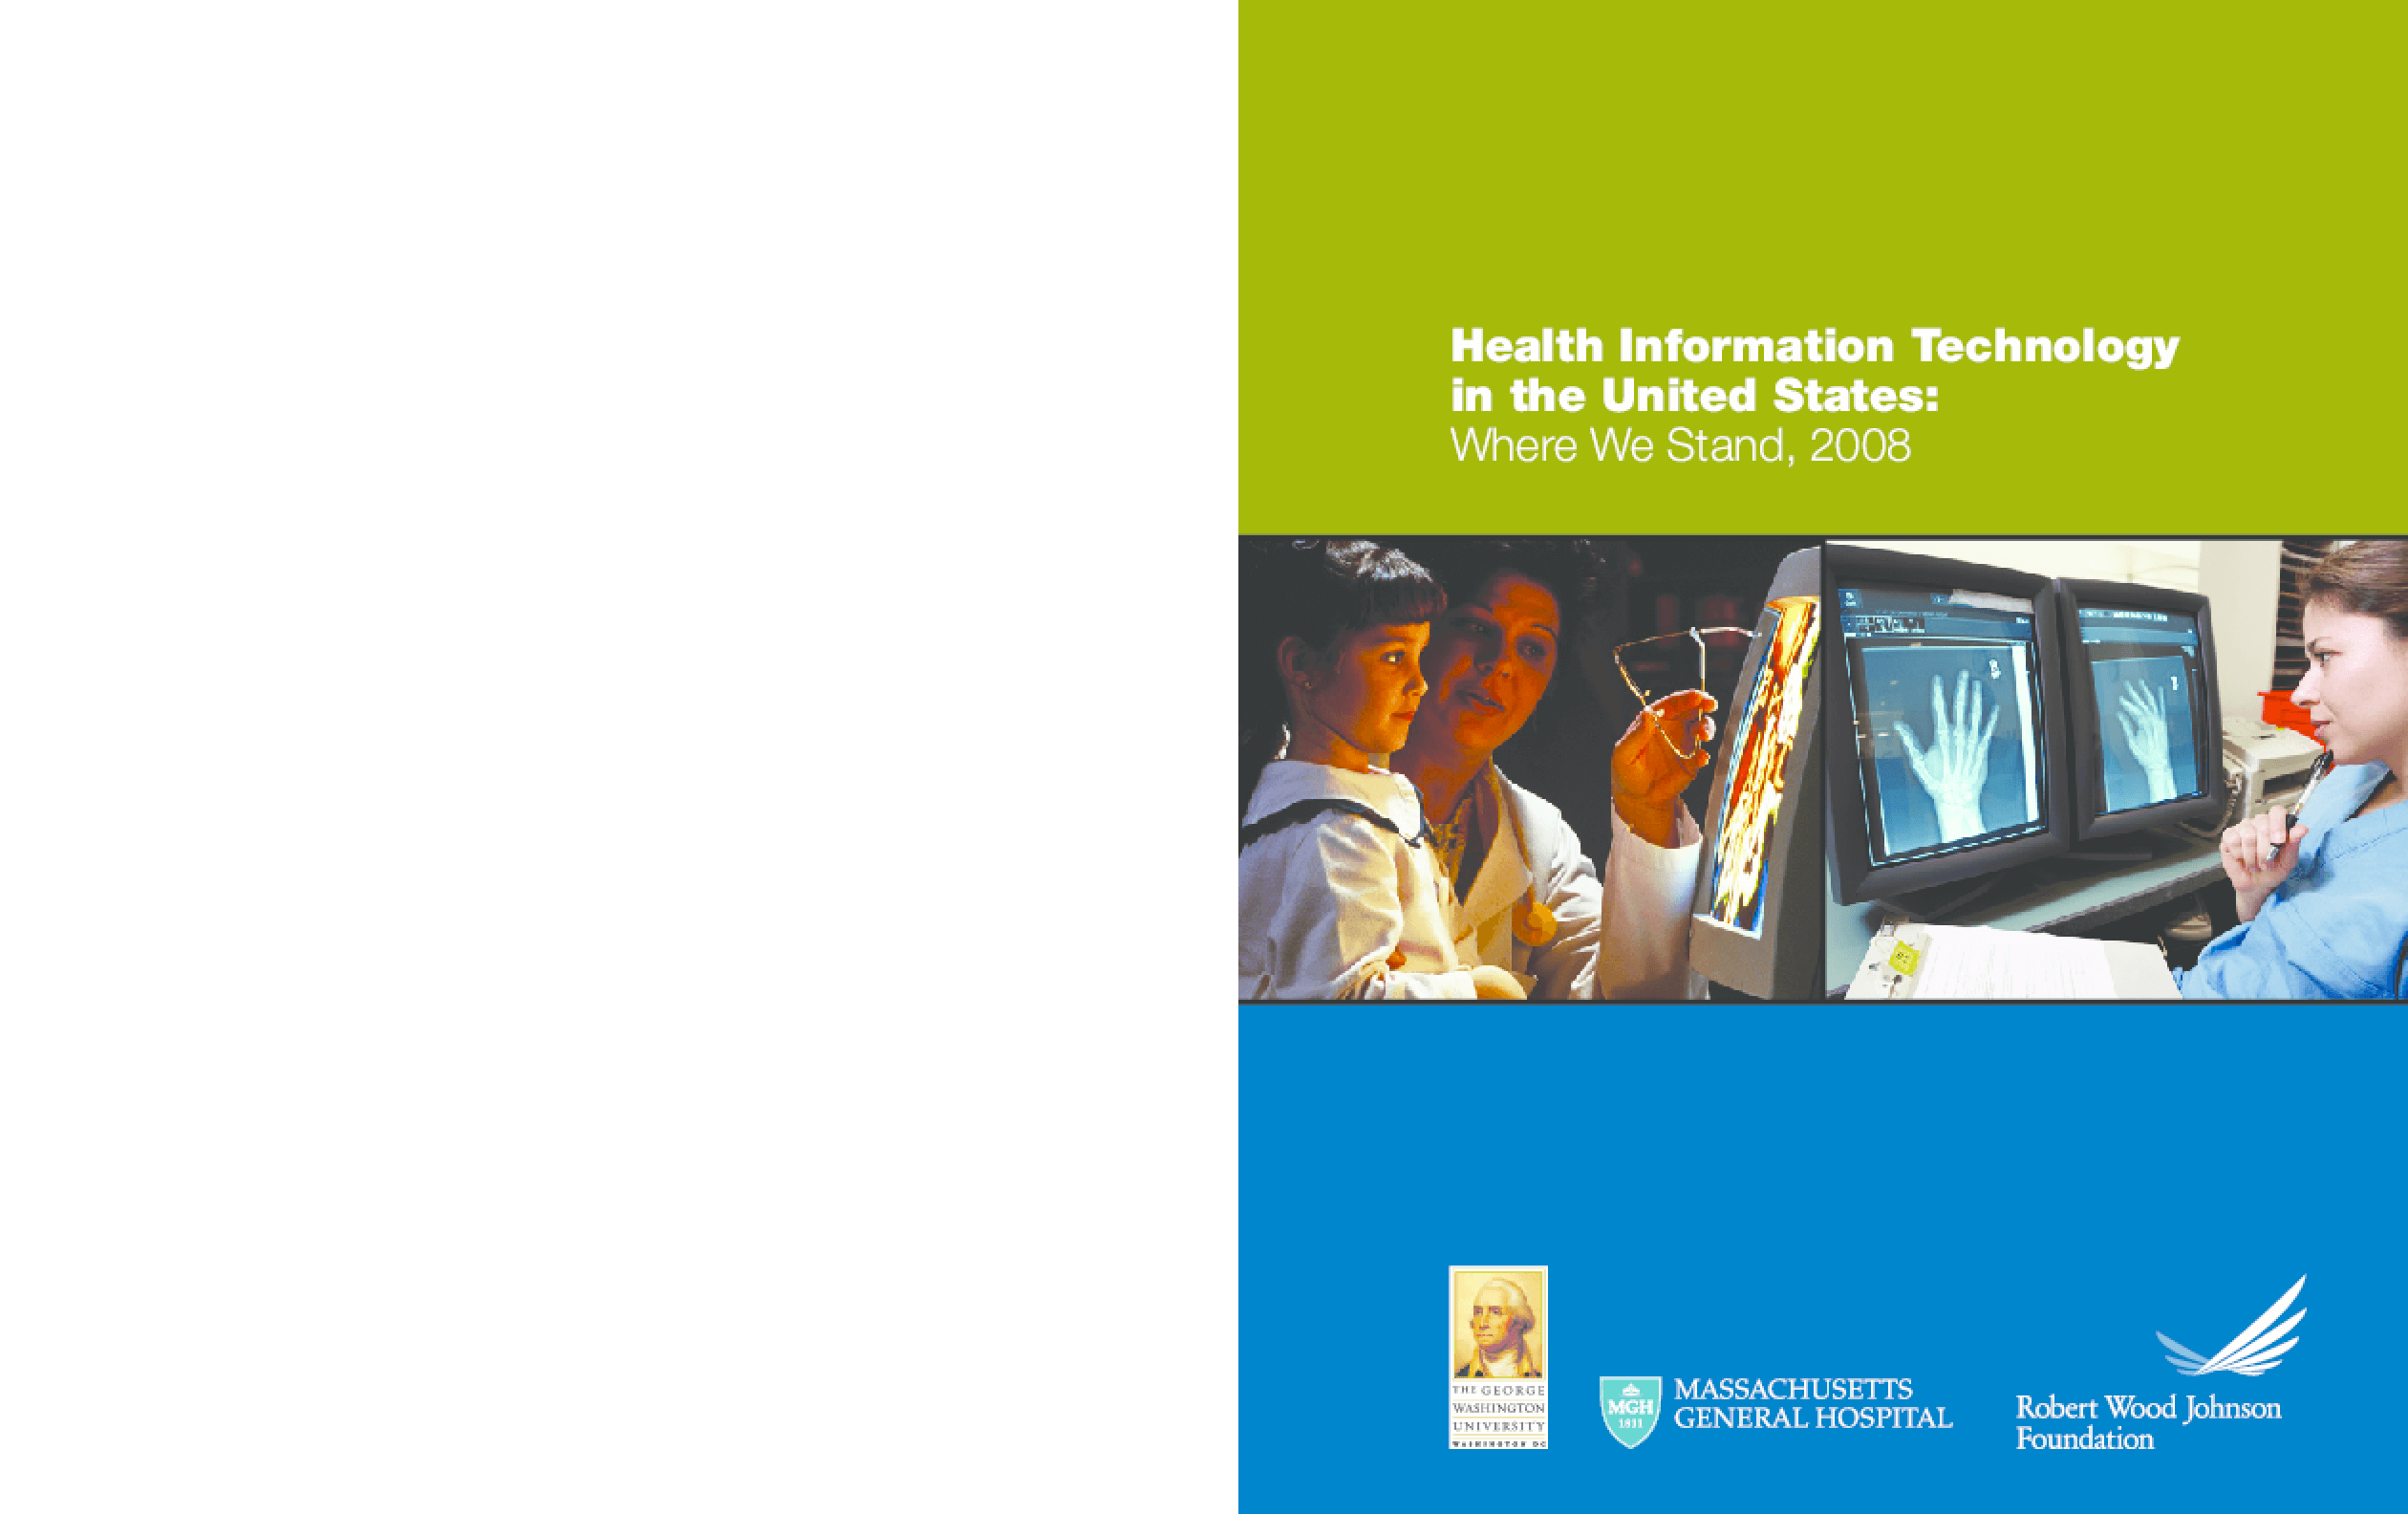 Health Information Technology in the United States, 2008